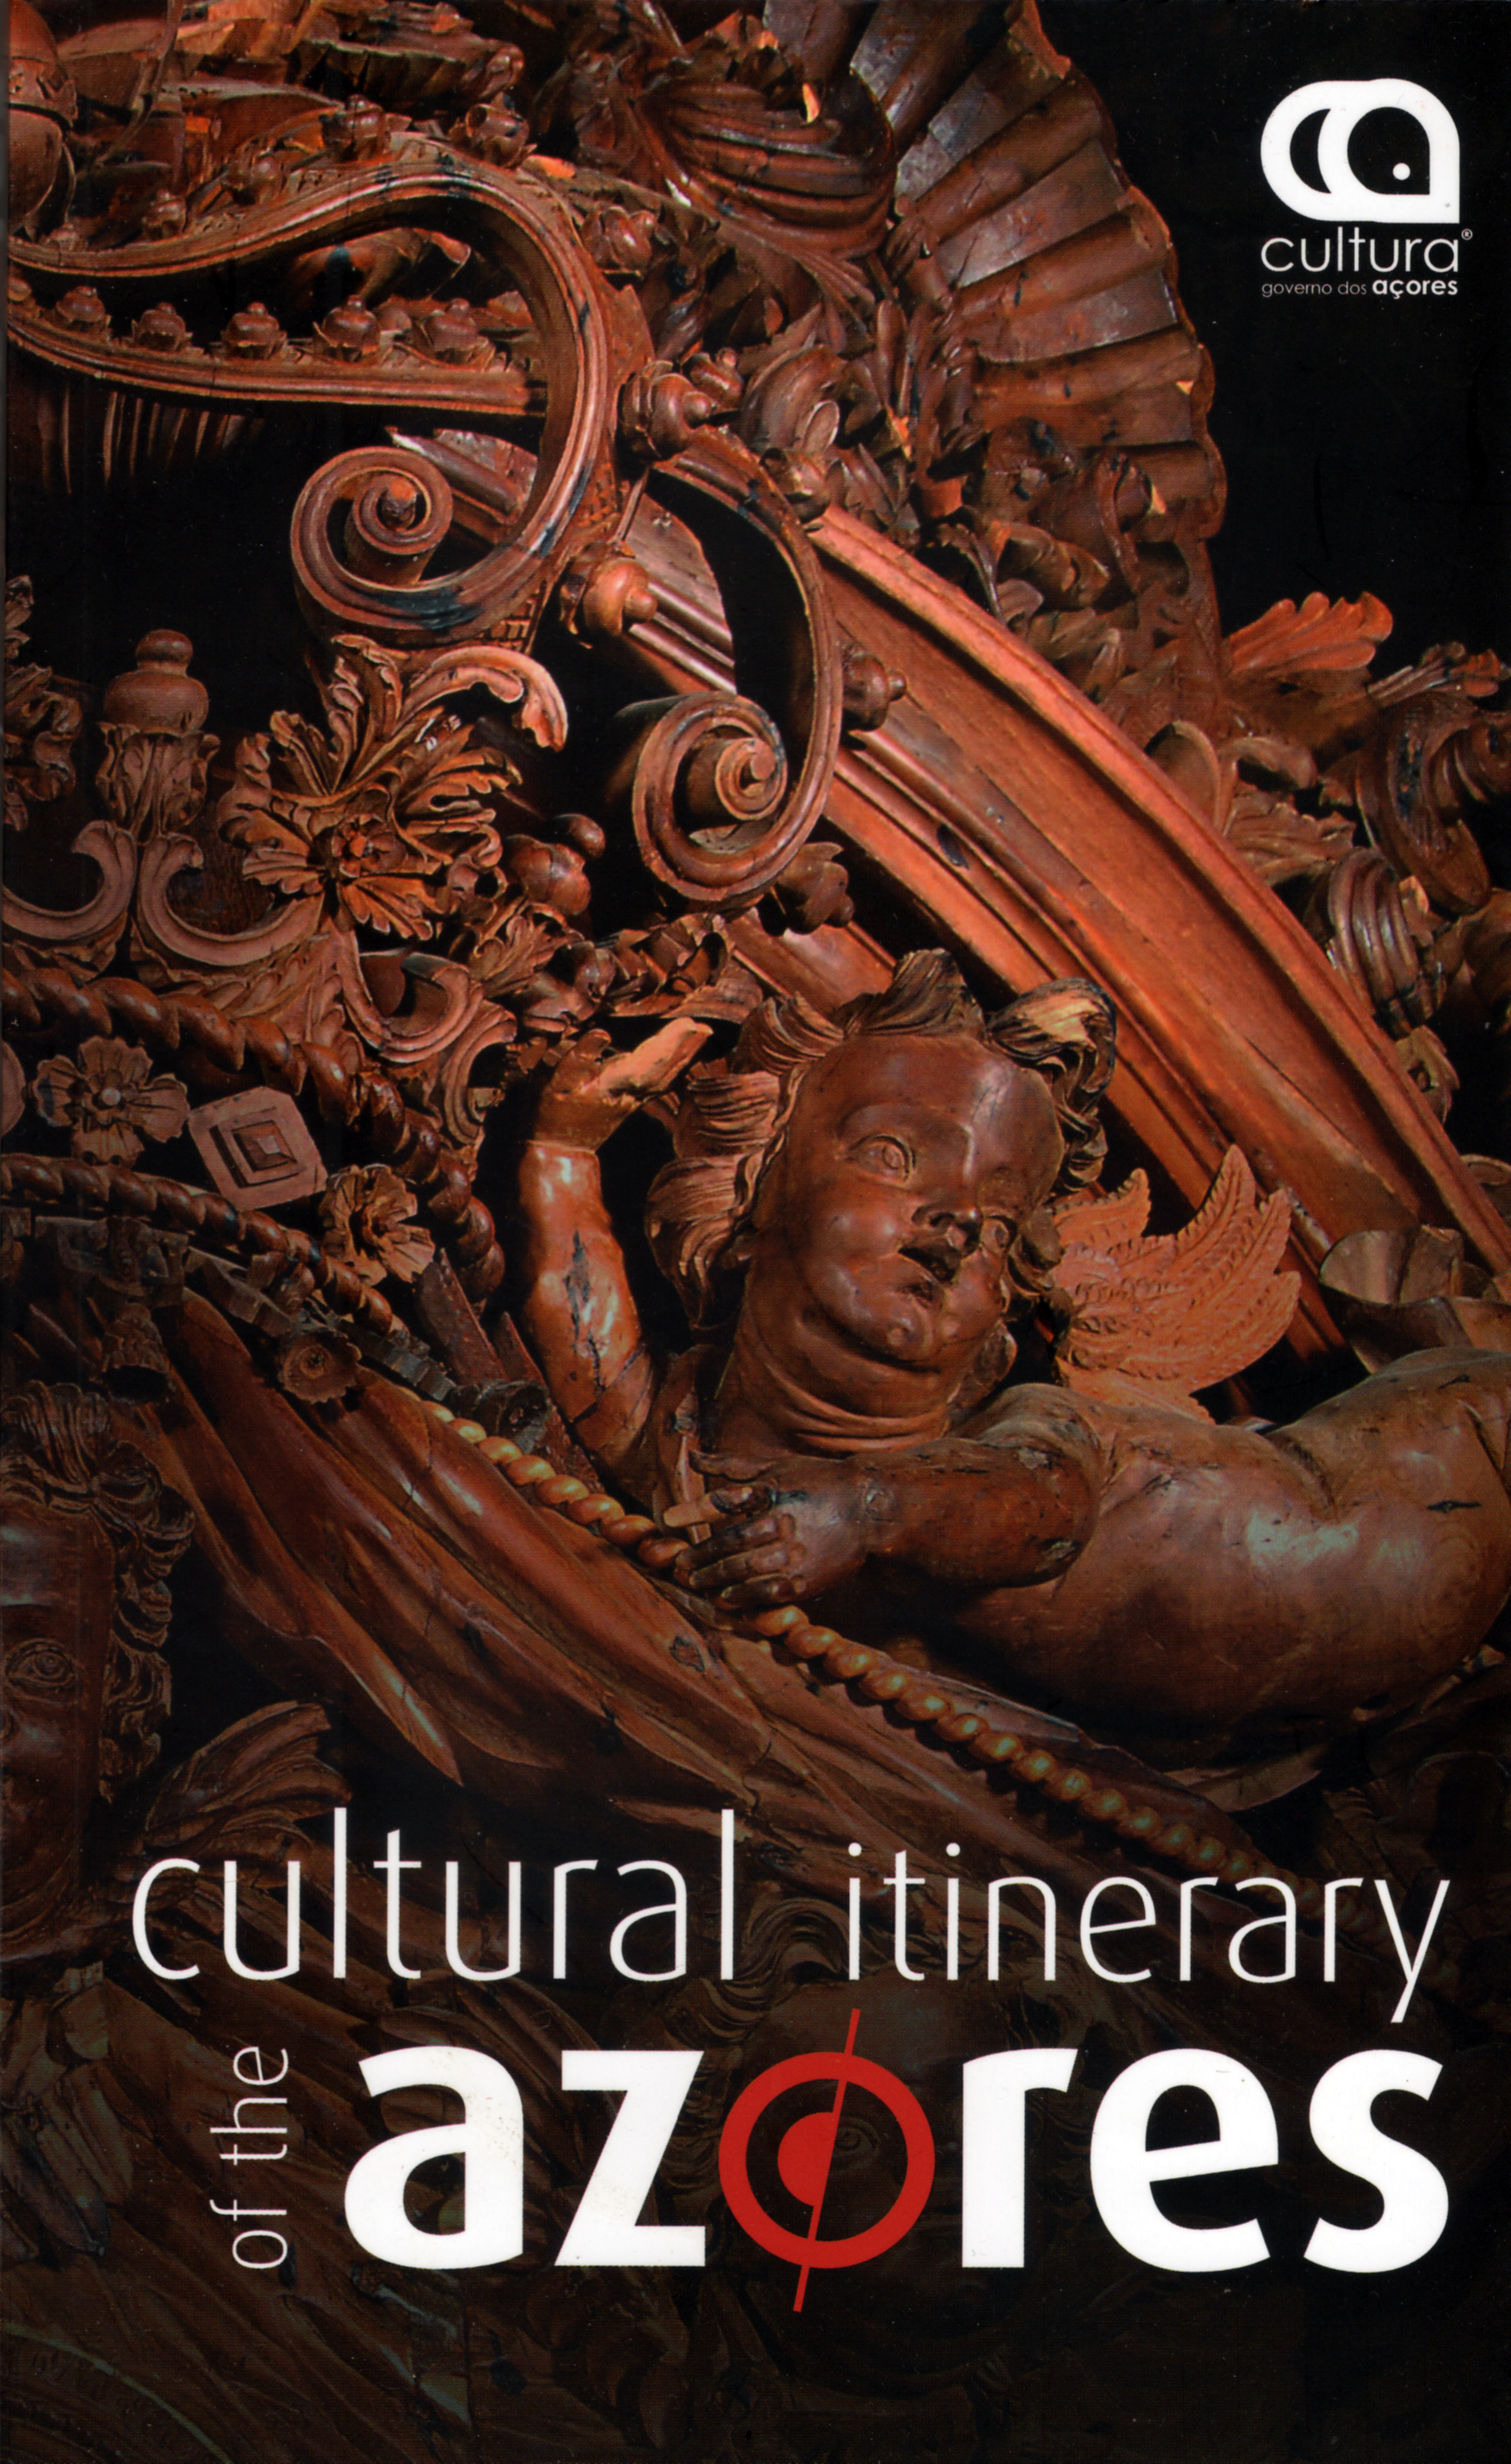 Cultural Itinerary of the Azores